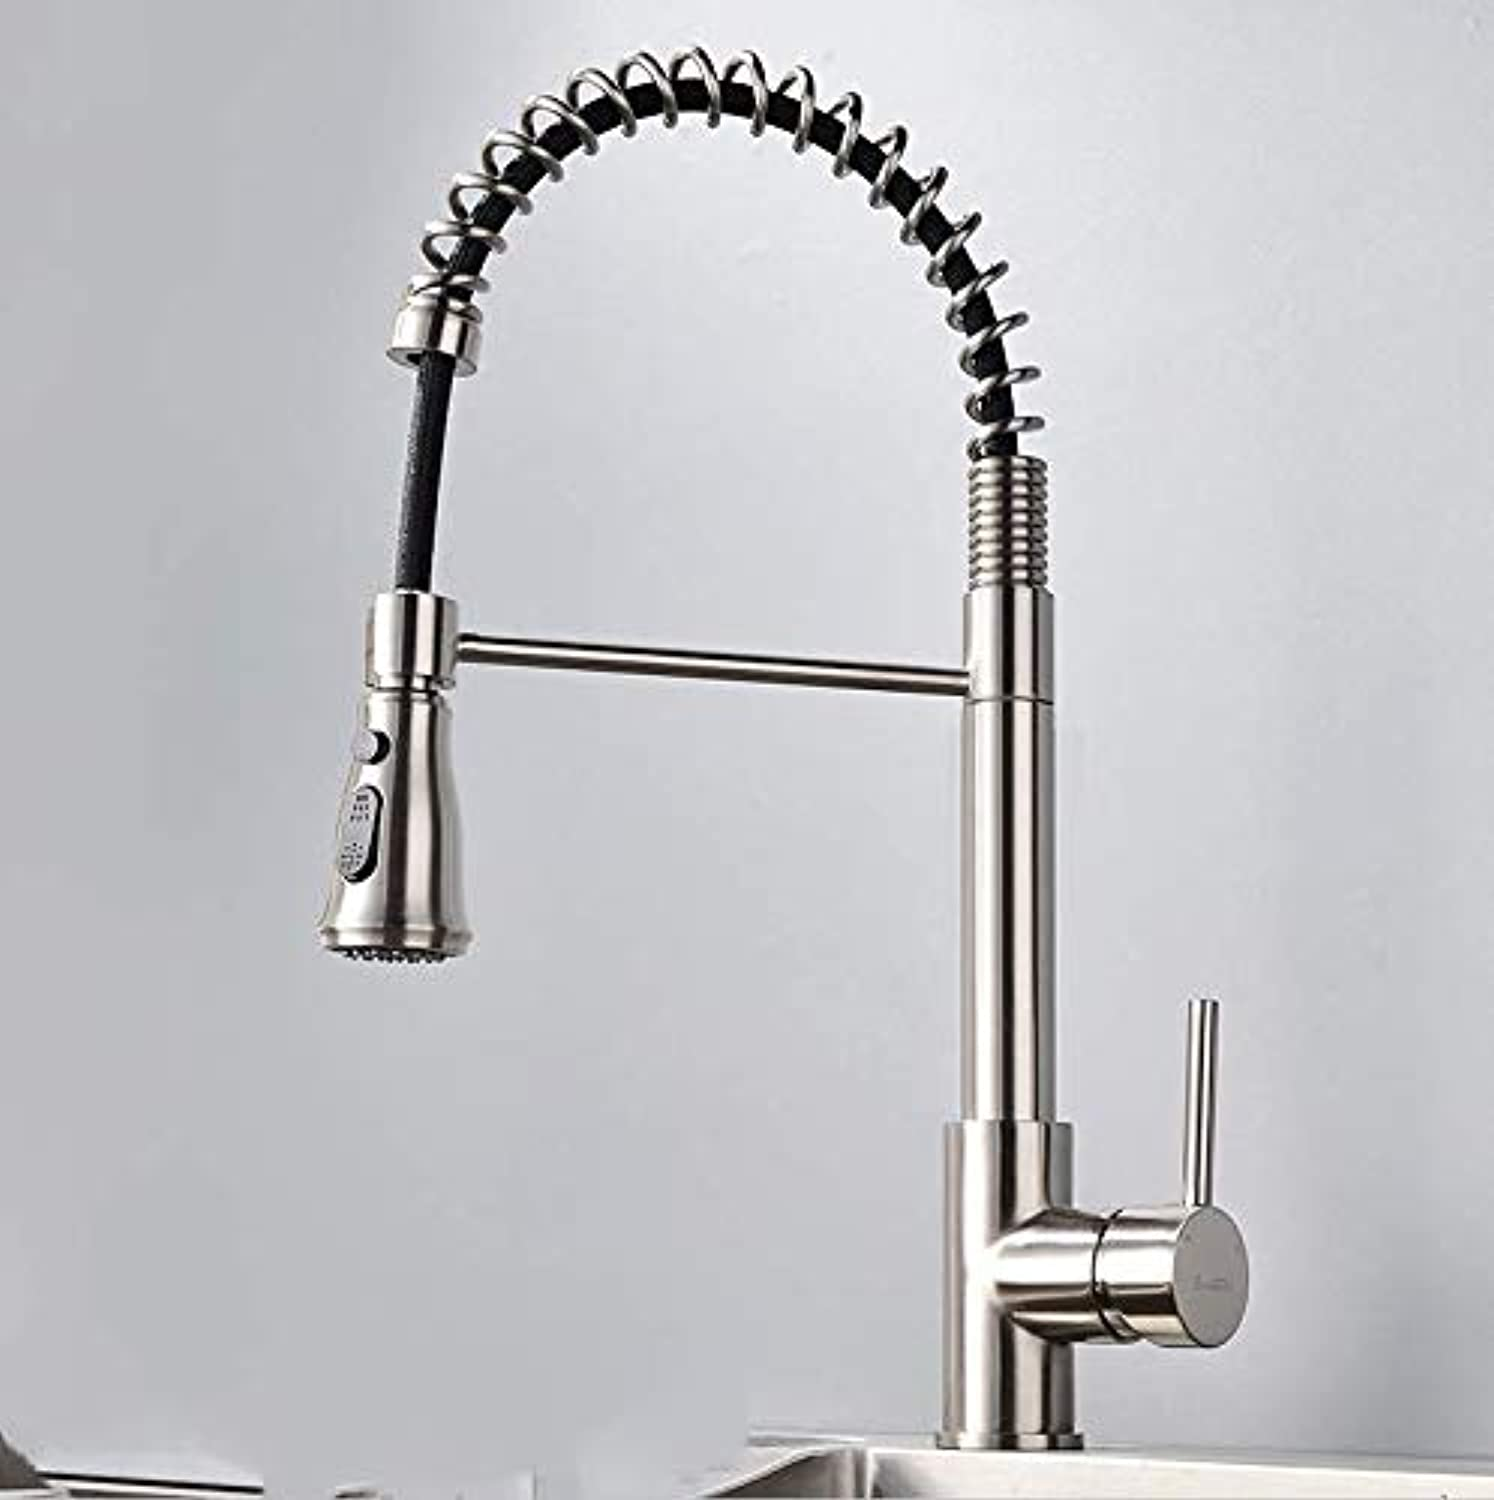 JONTON Hot and cold water faucet all copper kitchen sink hot and cold faucet nest kitchen faucet